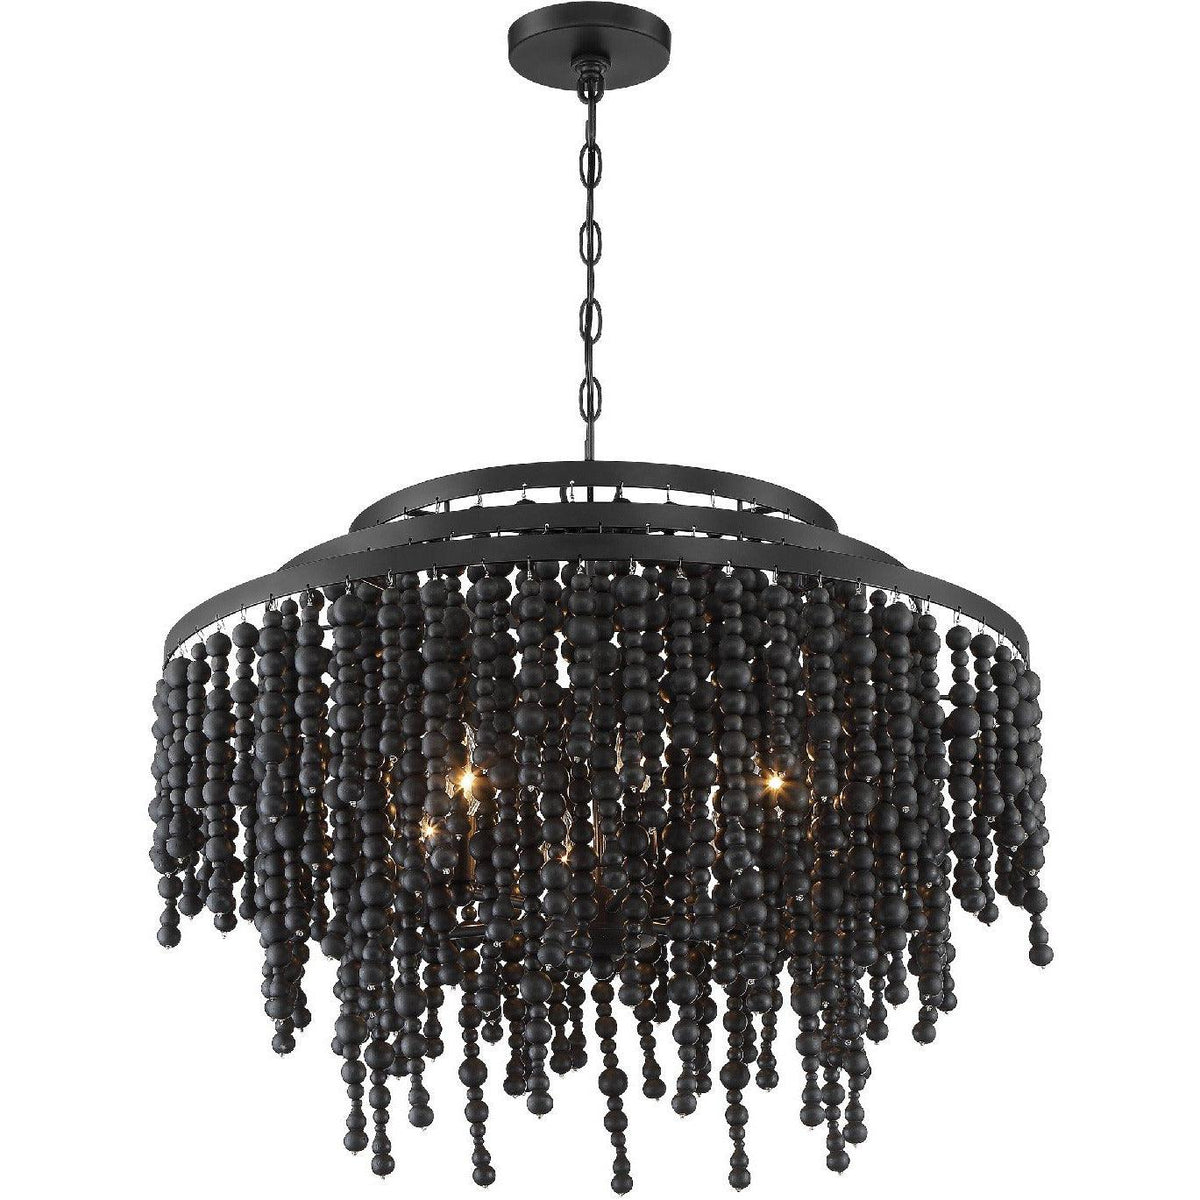 Crystorama - POP-A5076-MK - Six Light Chandelier - Poppy - Matte Black